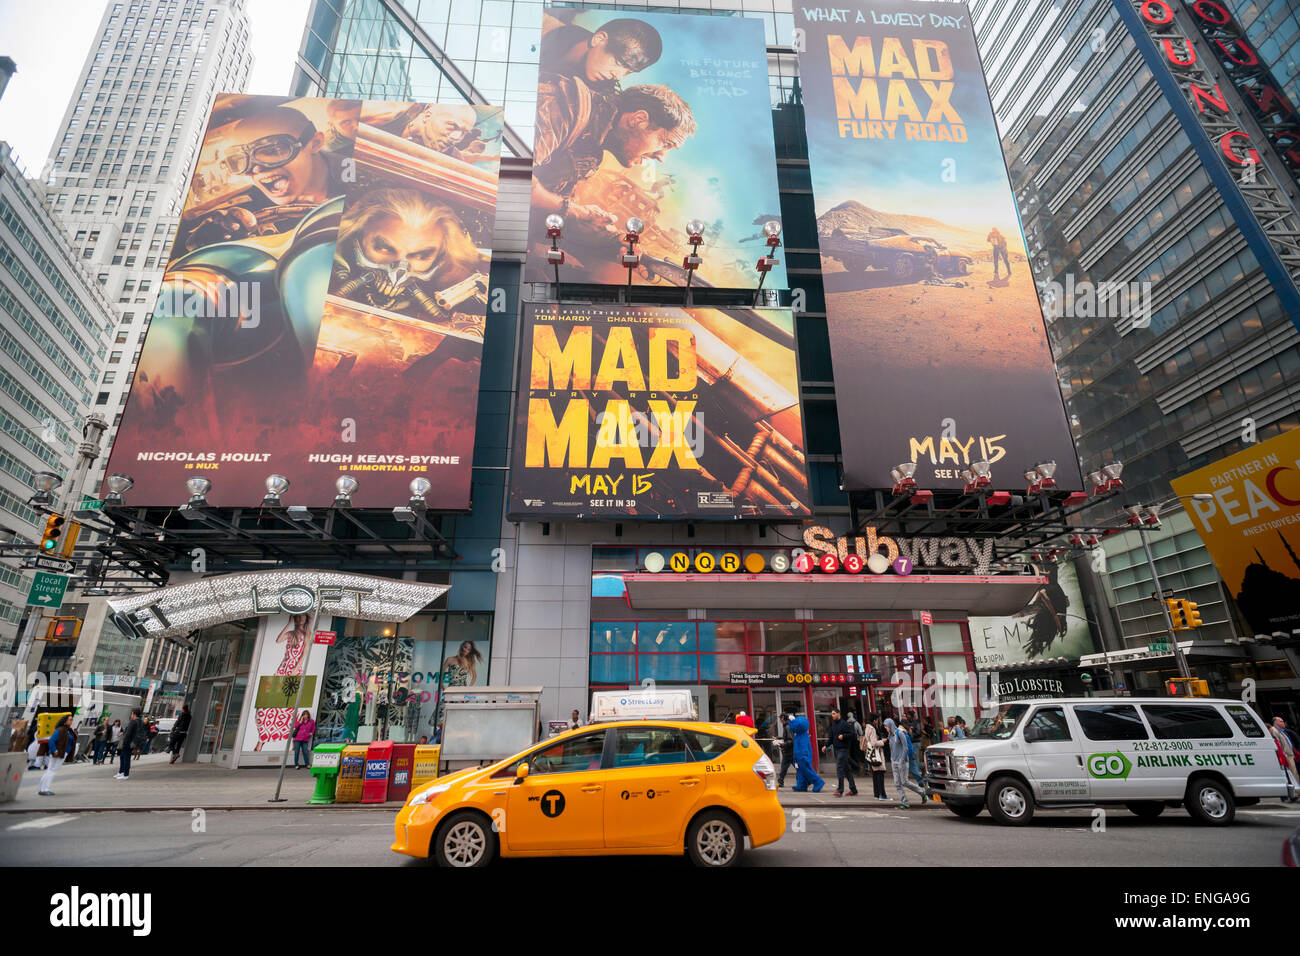 A billboard in Times Square on Friday, May 1, 2015 promotes the soon to be released film 'Mad Max: Fury Road'. - Stock Image